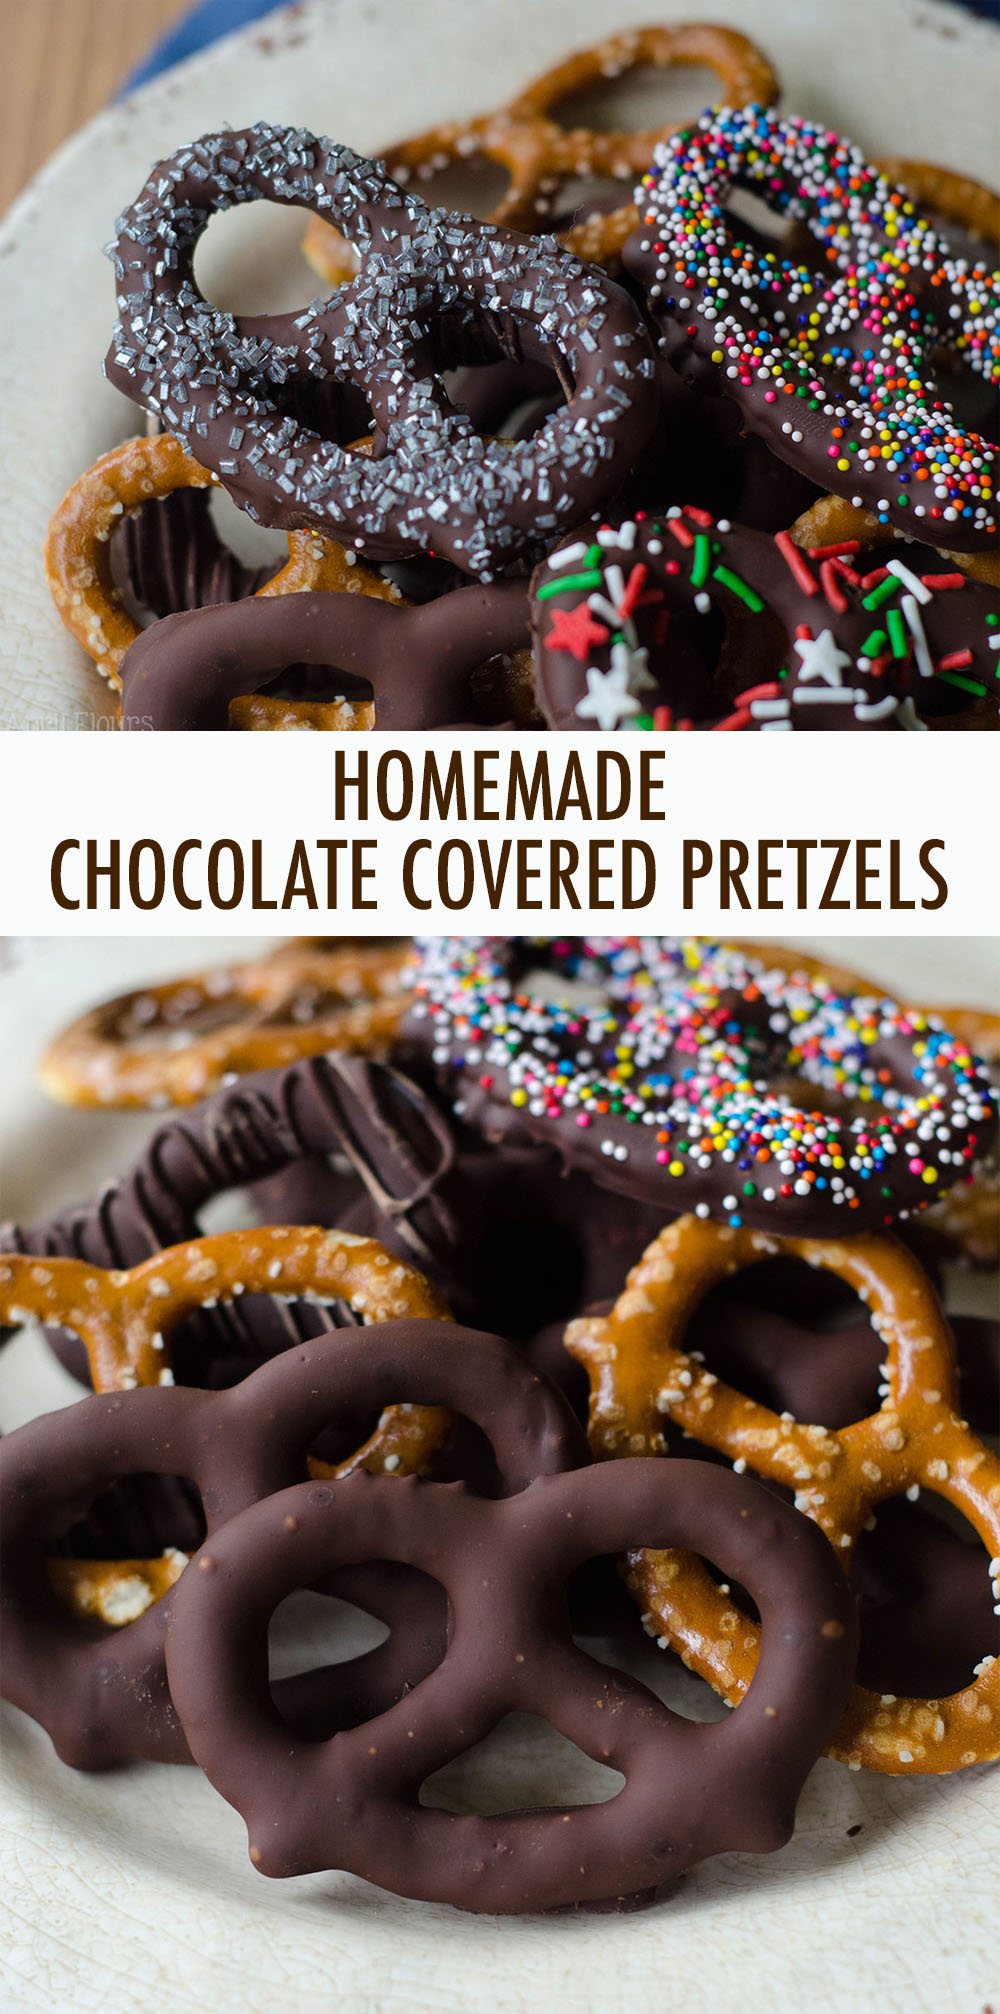 Make your own chocolate covered pretzels at home to stick in cookie trays or simply snack on!